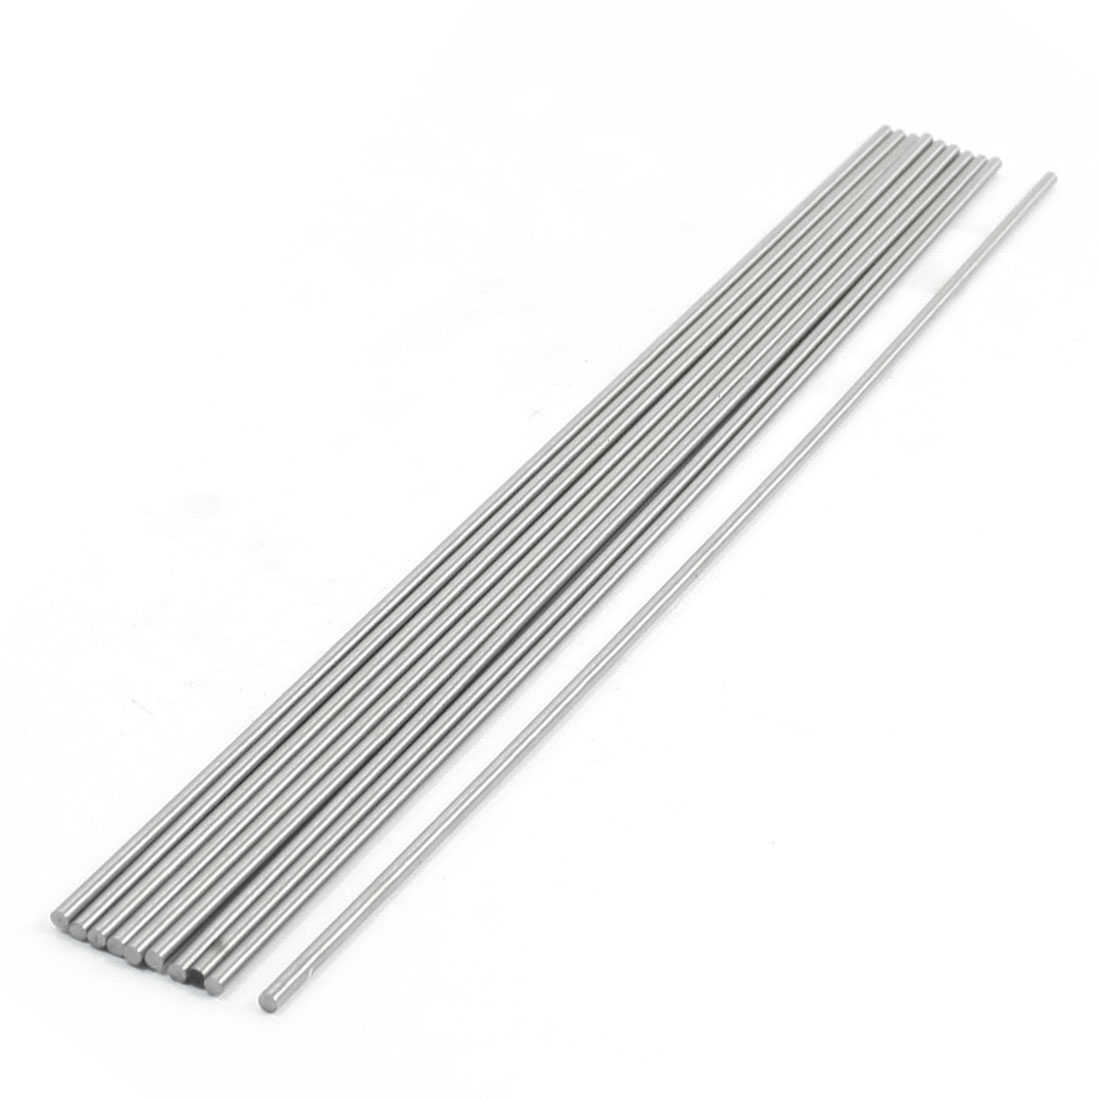 Unique Bargains 2mm x 200mm Graving Tool Round Turning Lathe Bars Silver Tone 10 Pcs